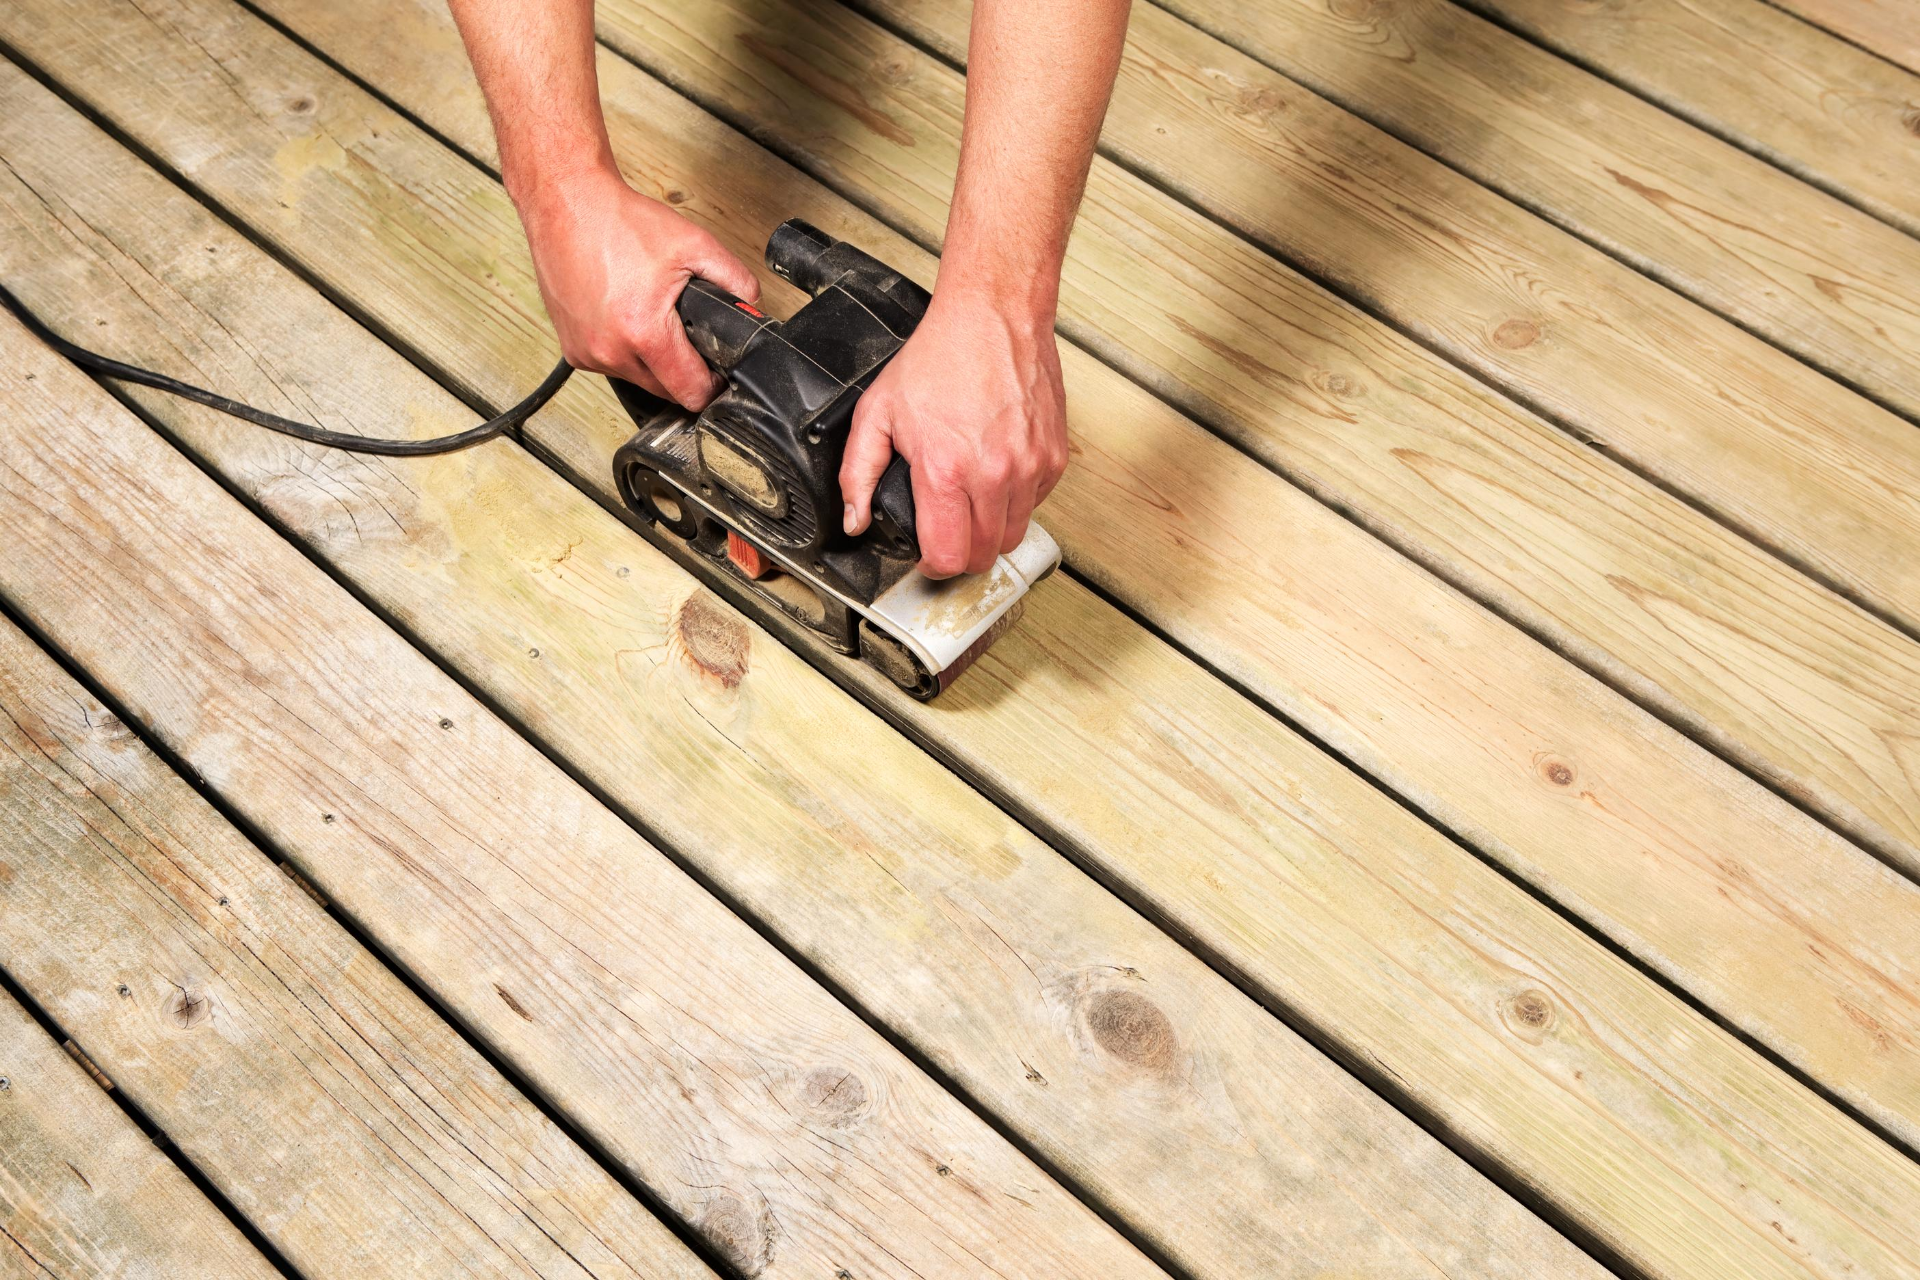 Deck Repair with Sander